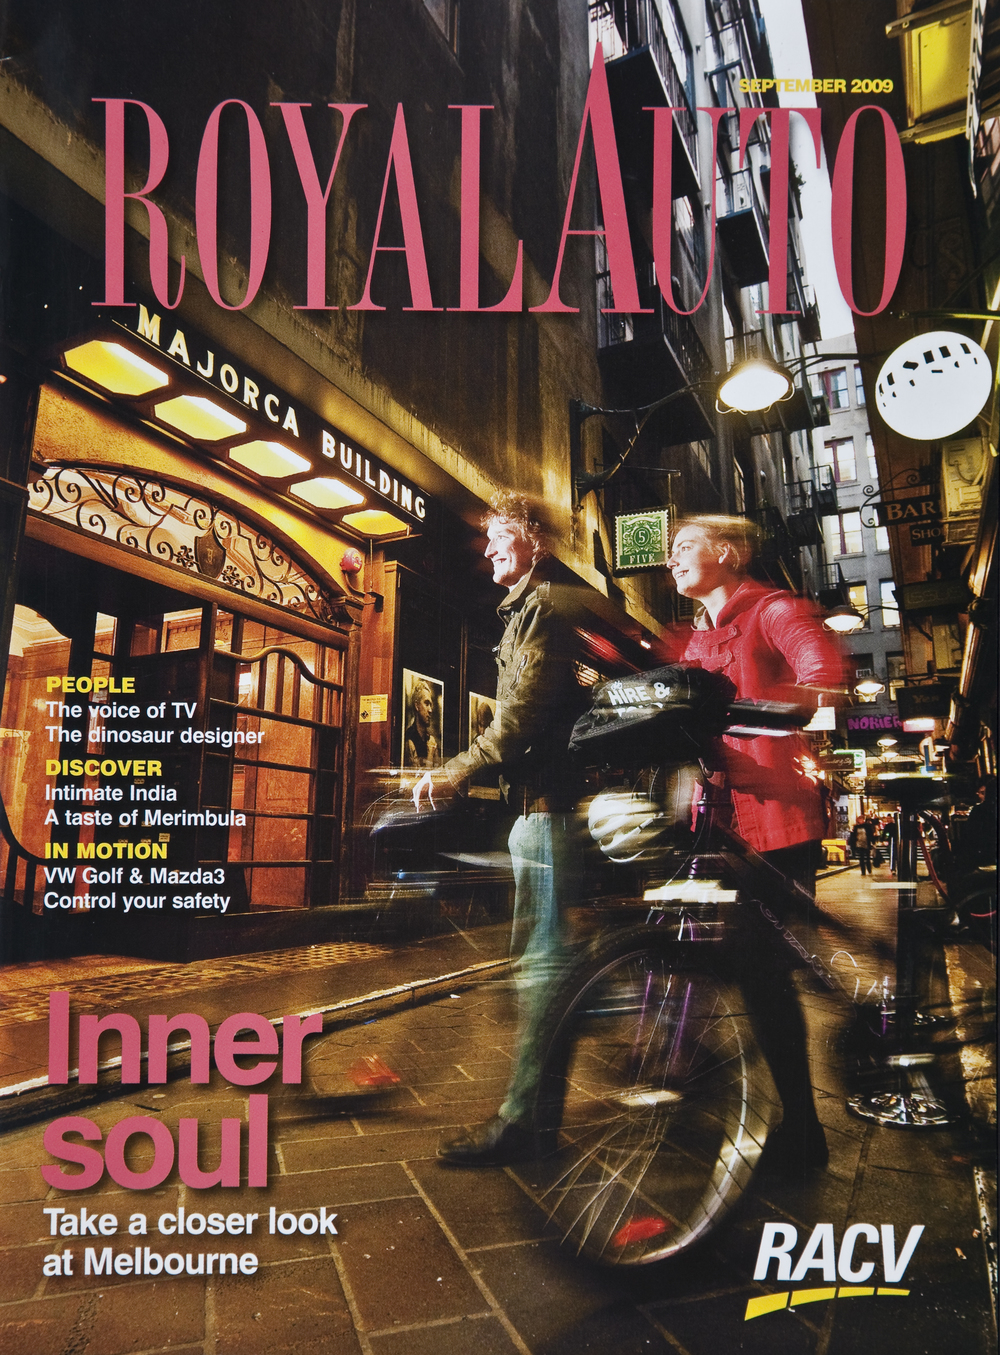 Royal Cycle cover.jpg